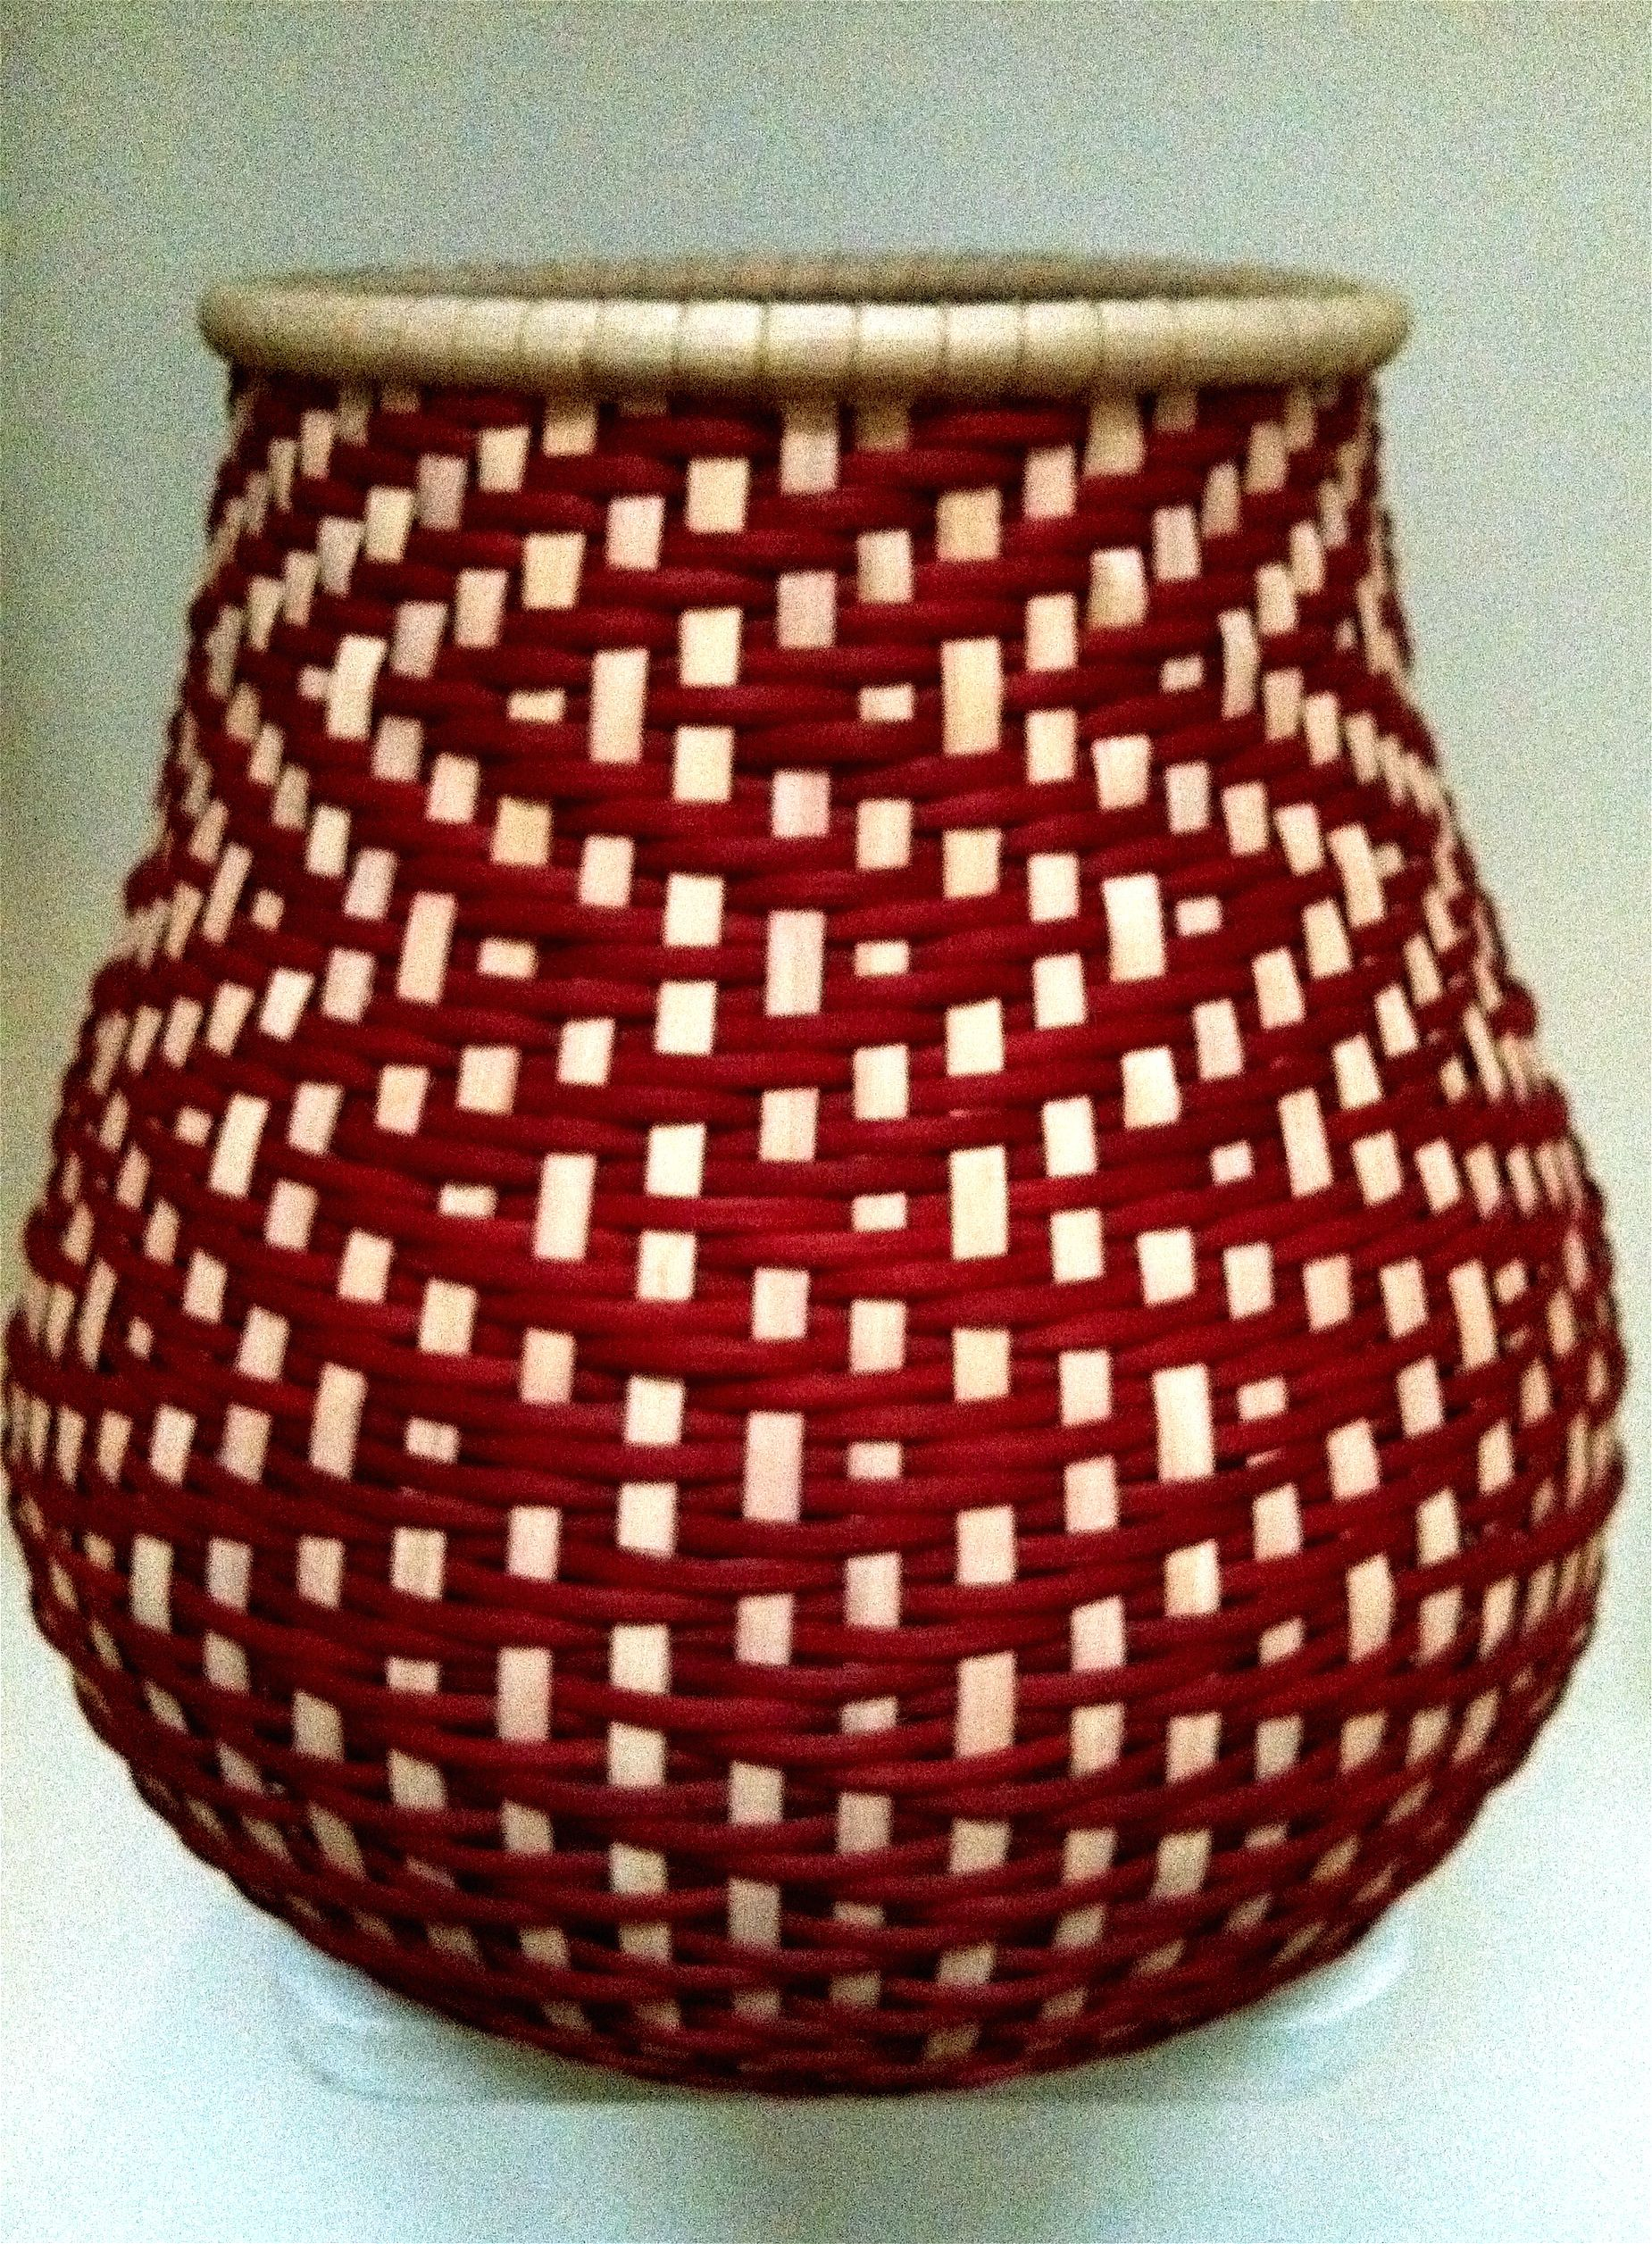 Nantucket Basket Weaving Patterns : Sularz serpentinetwill basket pinned from pinto for ipad